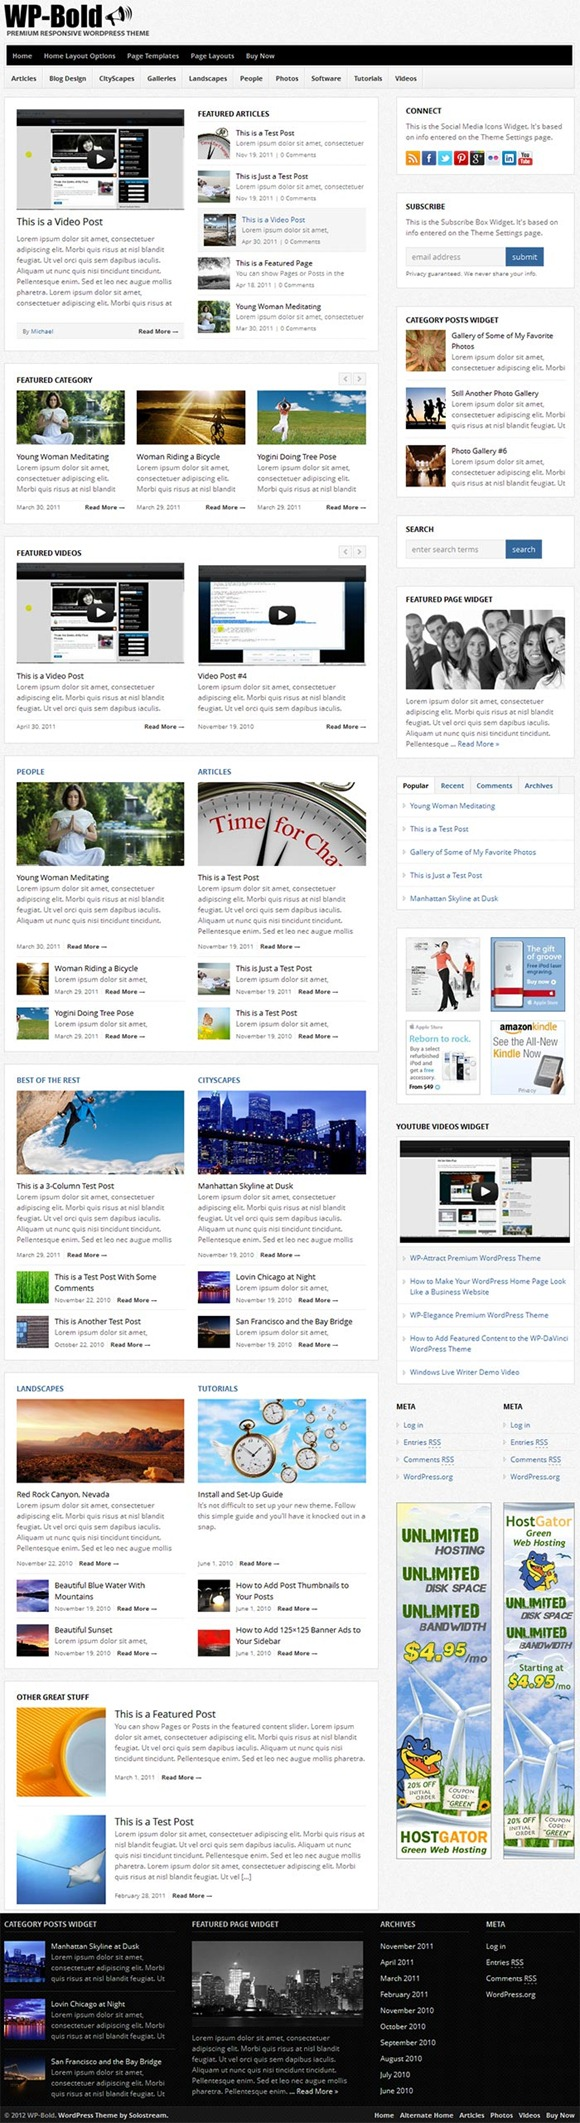 wpbold-wordpress-theme-from-solostream